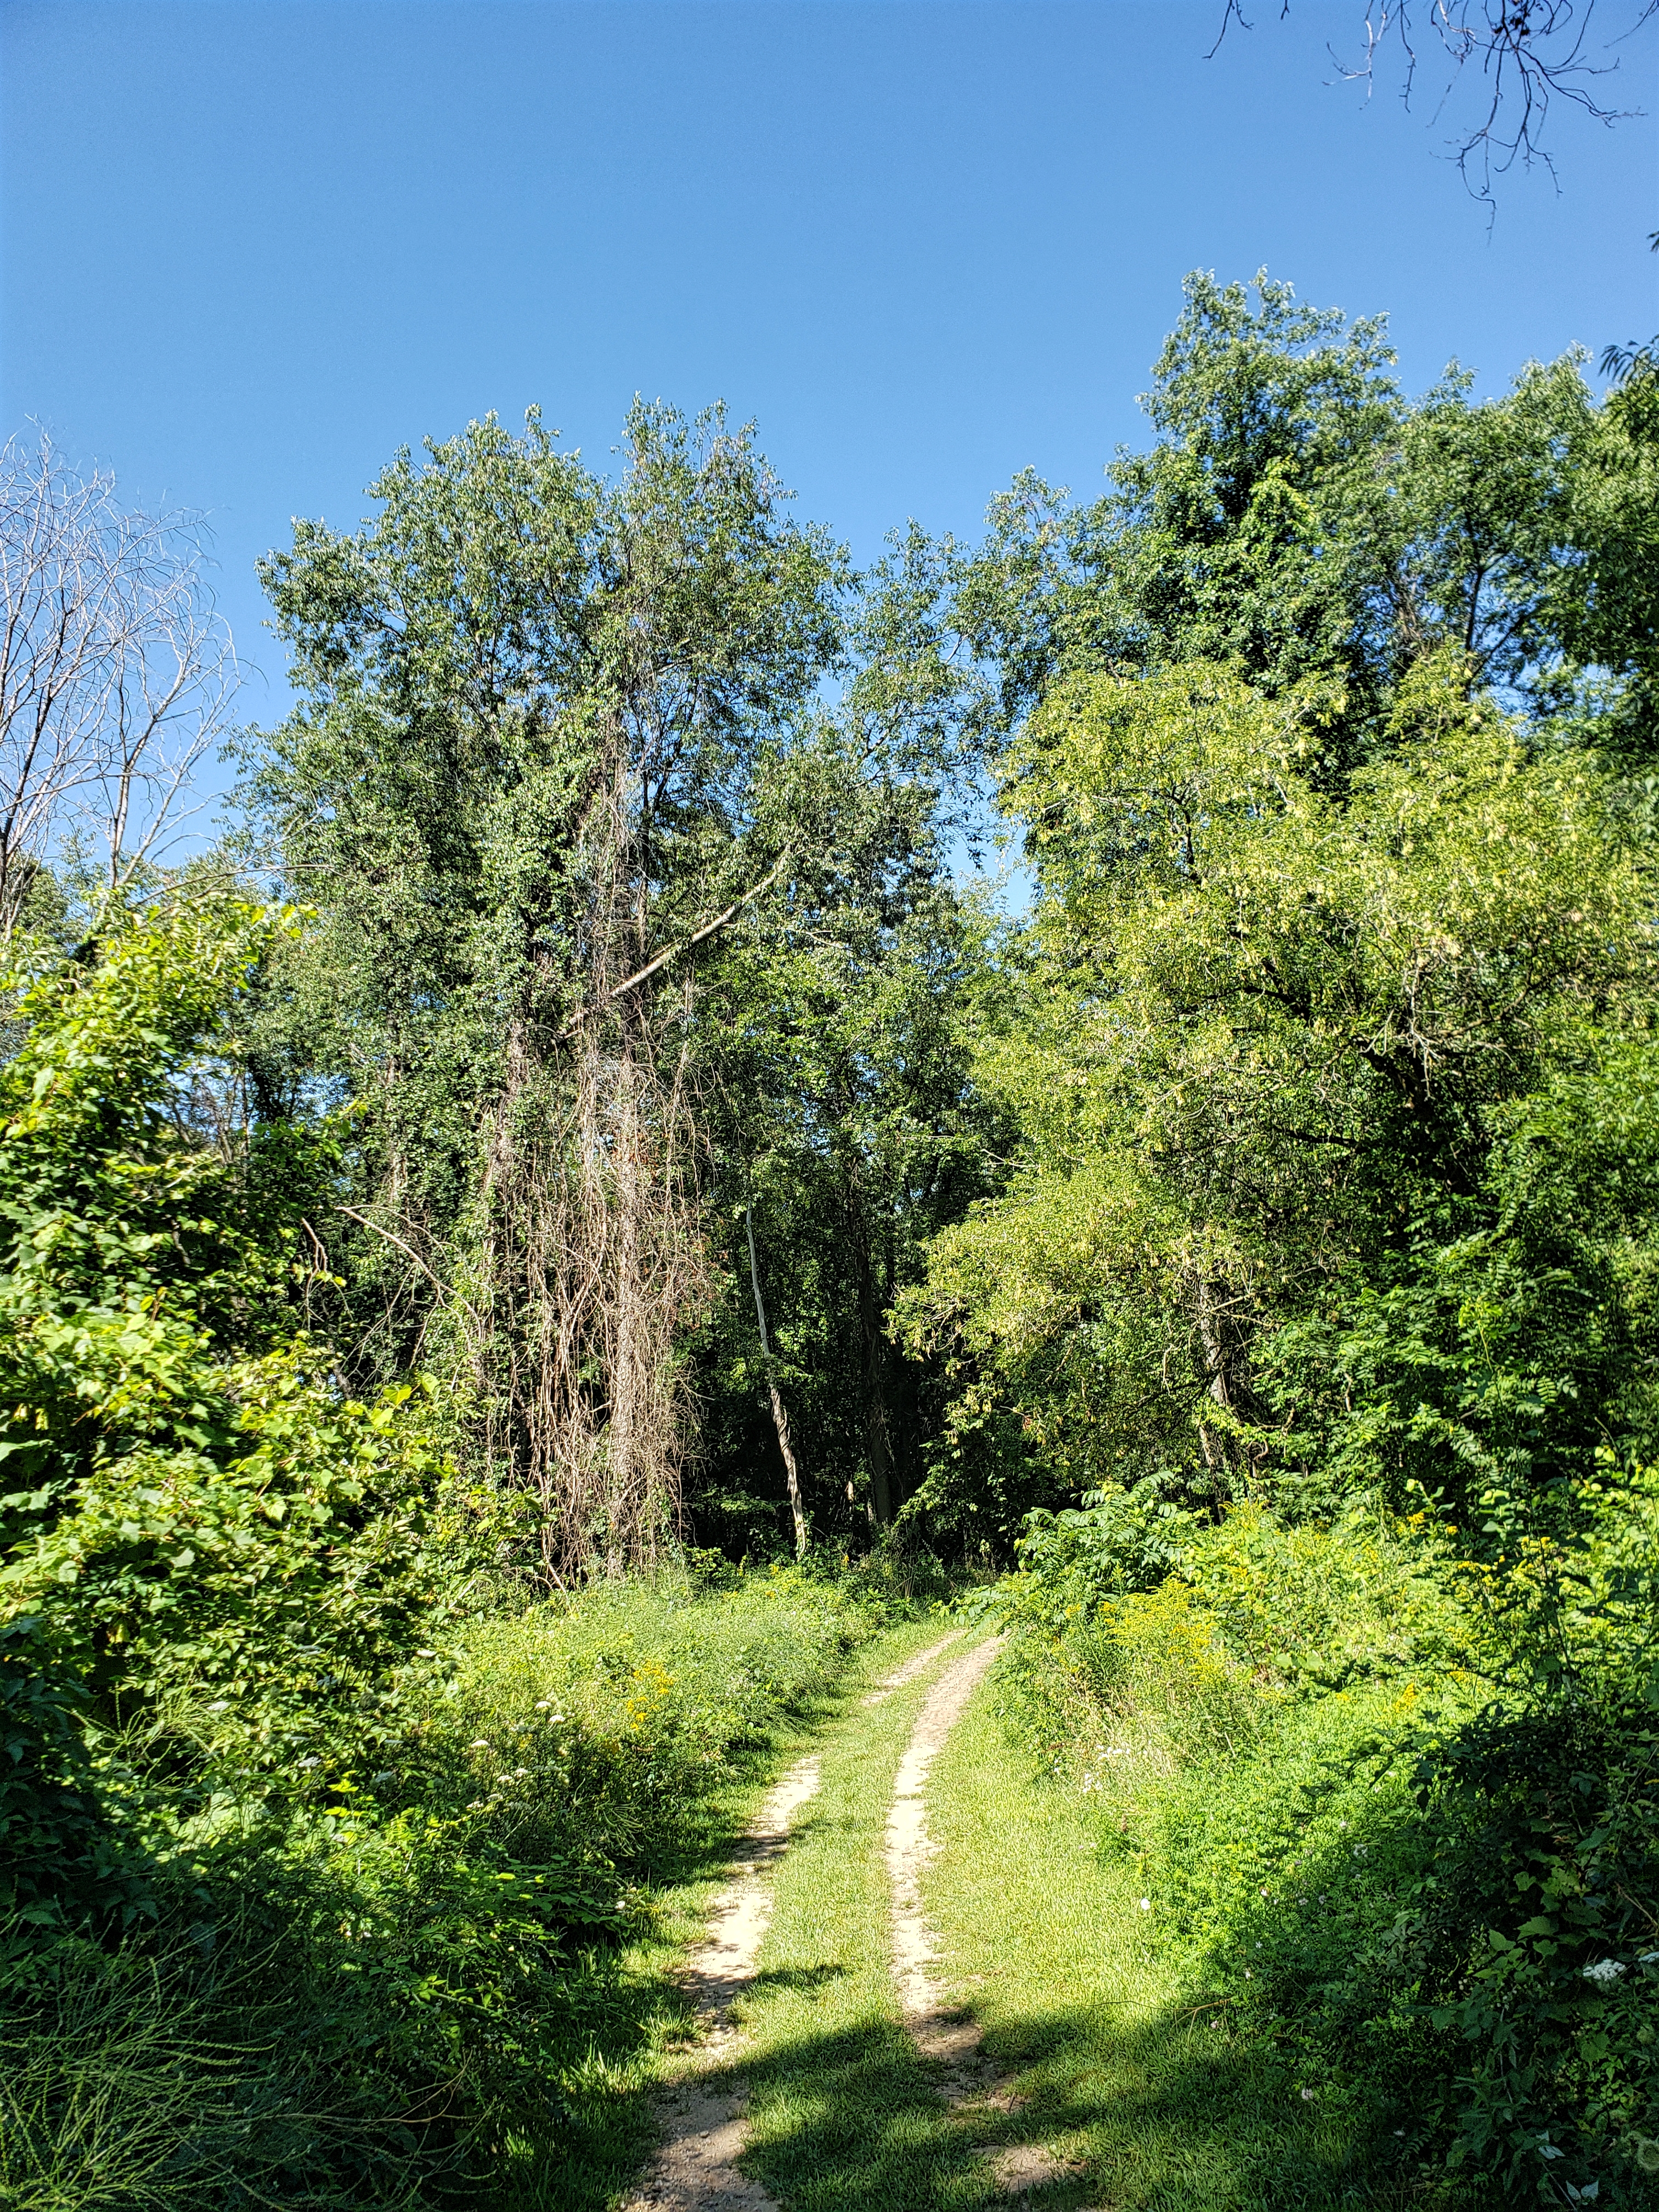 Another trolley trail landscape. this path leads into the woods.